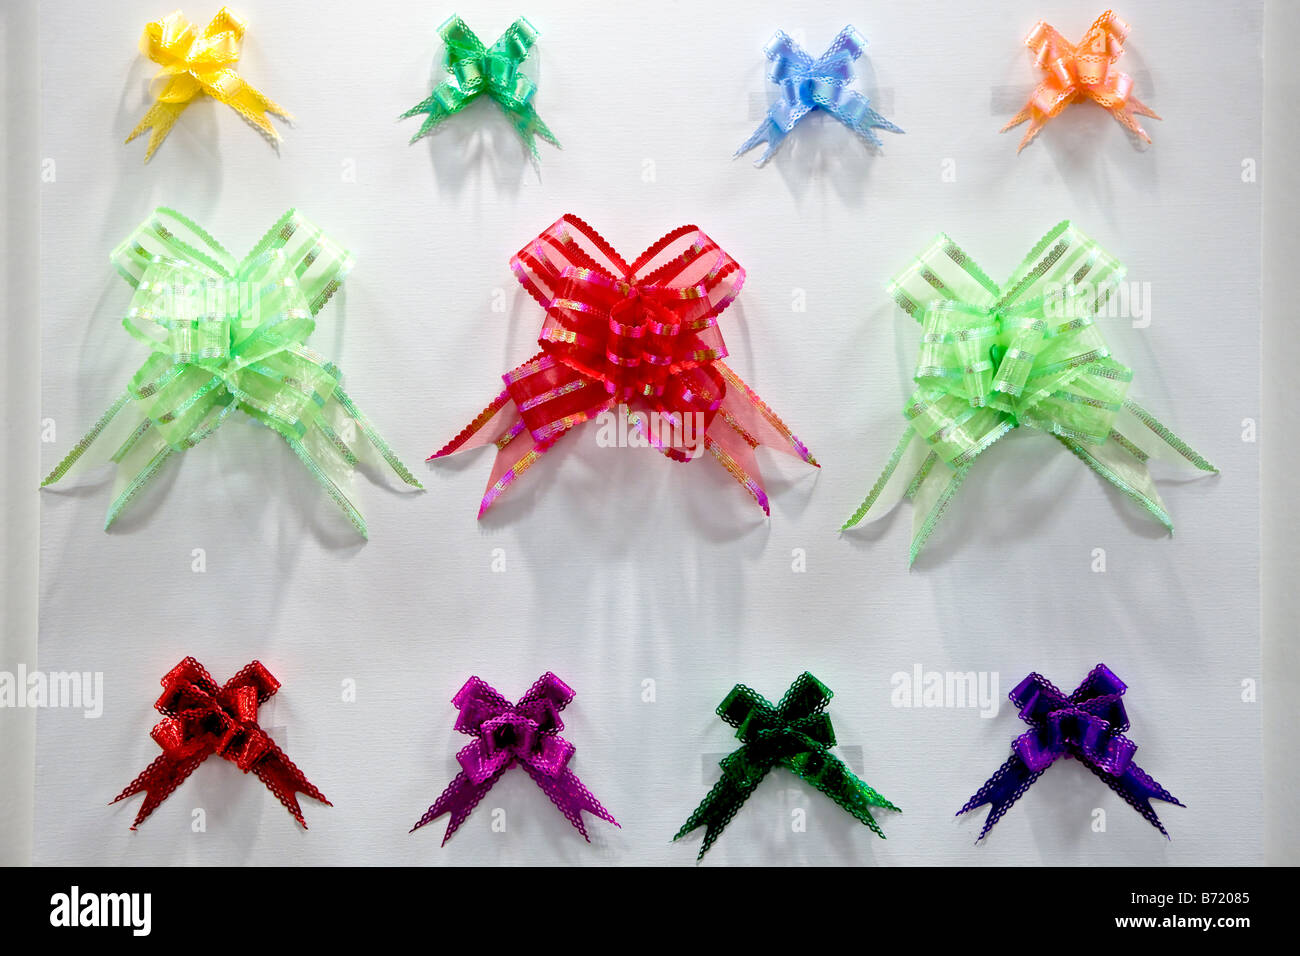 Colourful bows - Stock Image